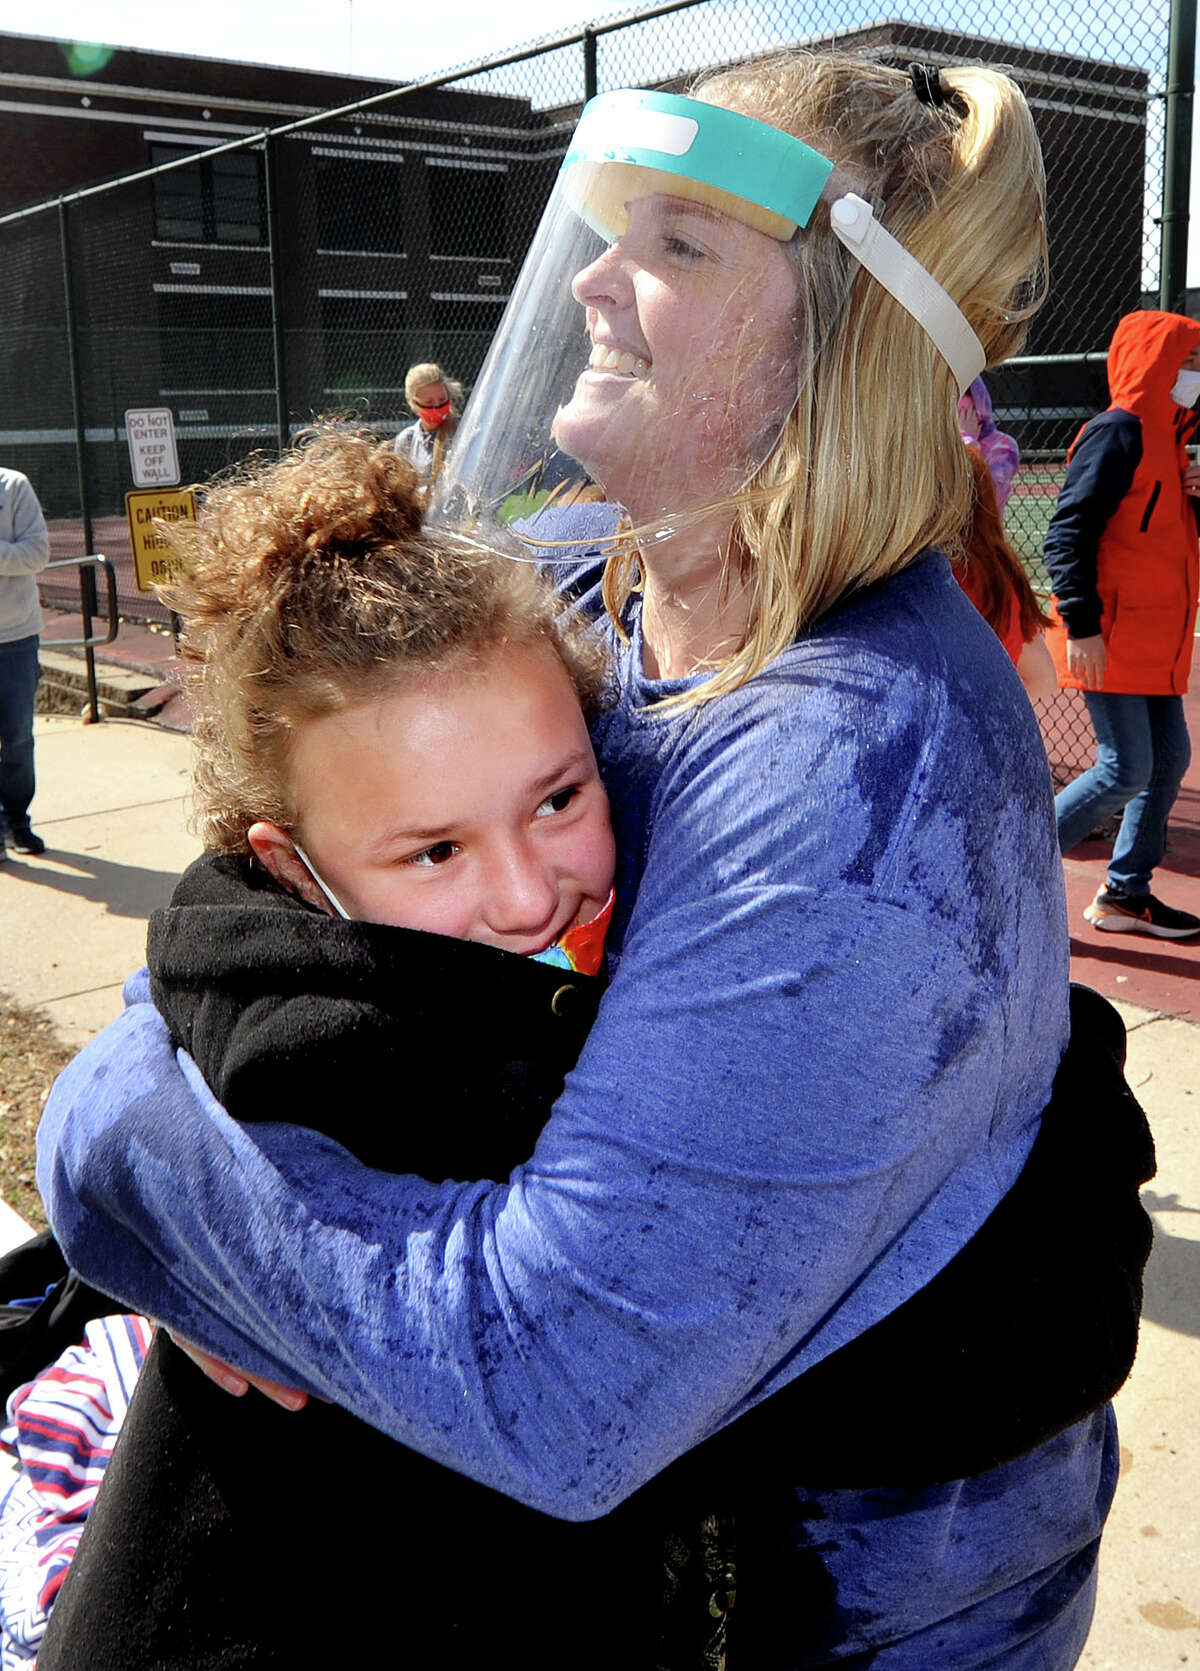 Lincoln Middle School Future Life Skills teacher Alyssa Smith (right) gets a hug from one of her students Aliana Robertson, 12, after Smith had cold water poured onto her during the Polar Plunge at the school Friday.